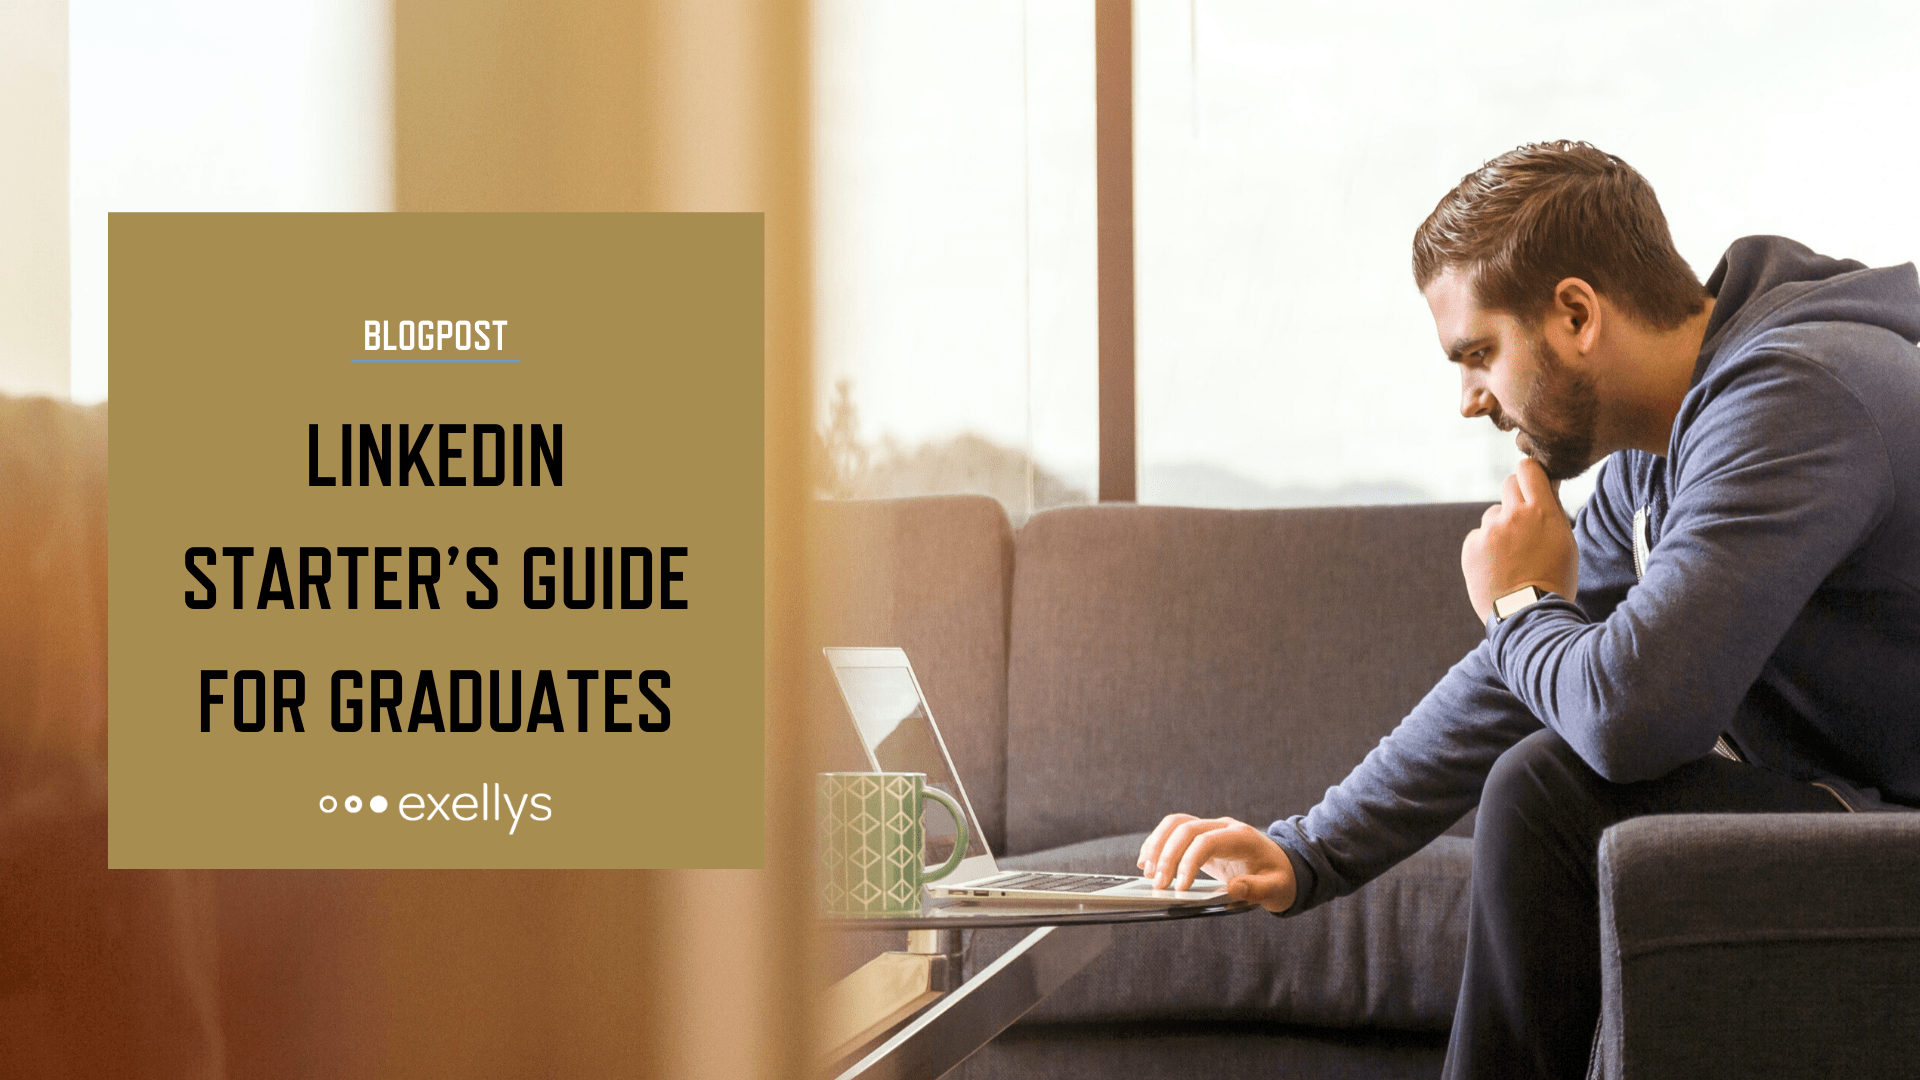 LinkedIn starter's guide for graduates - Social share image